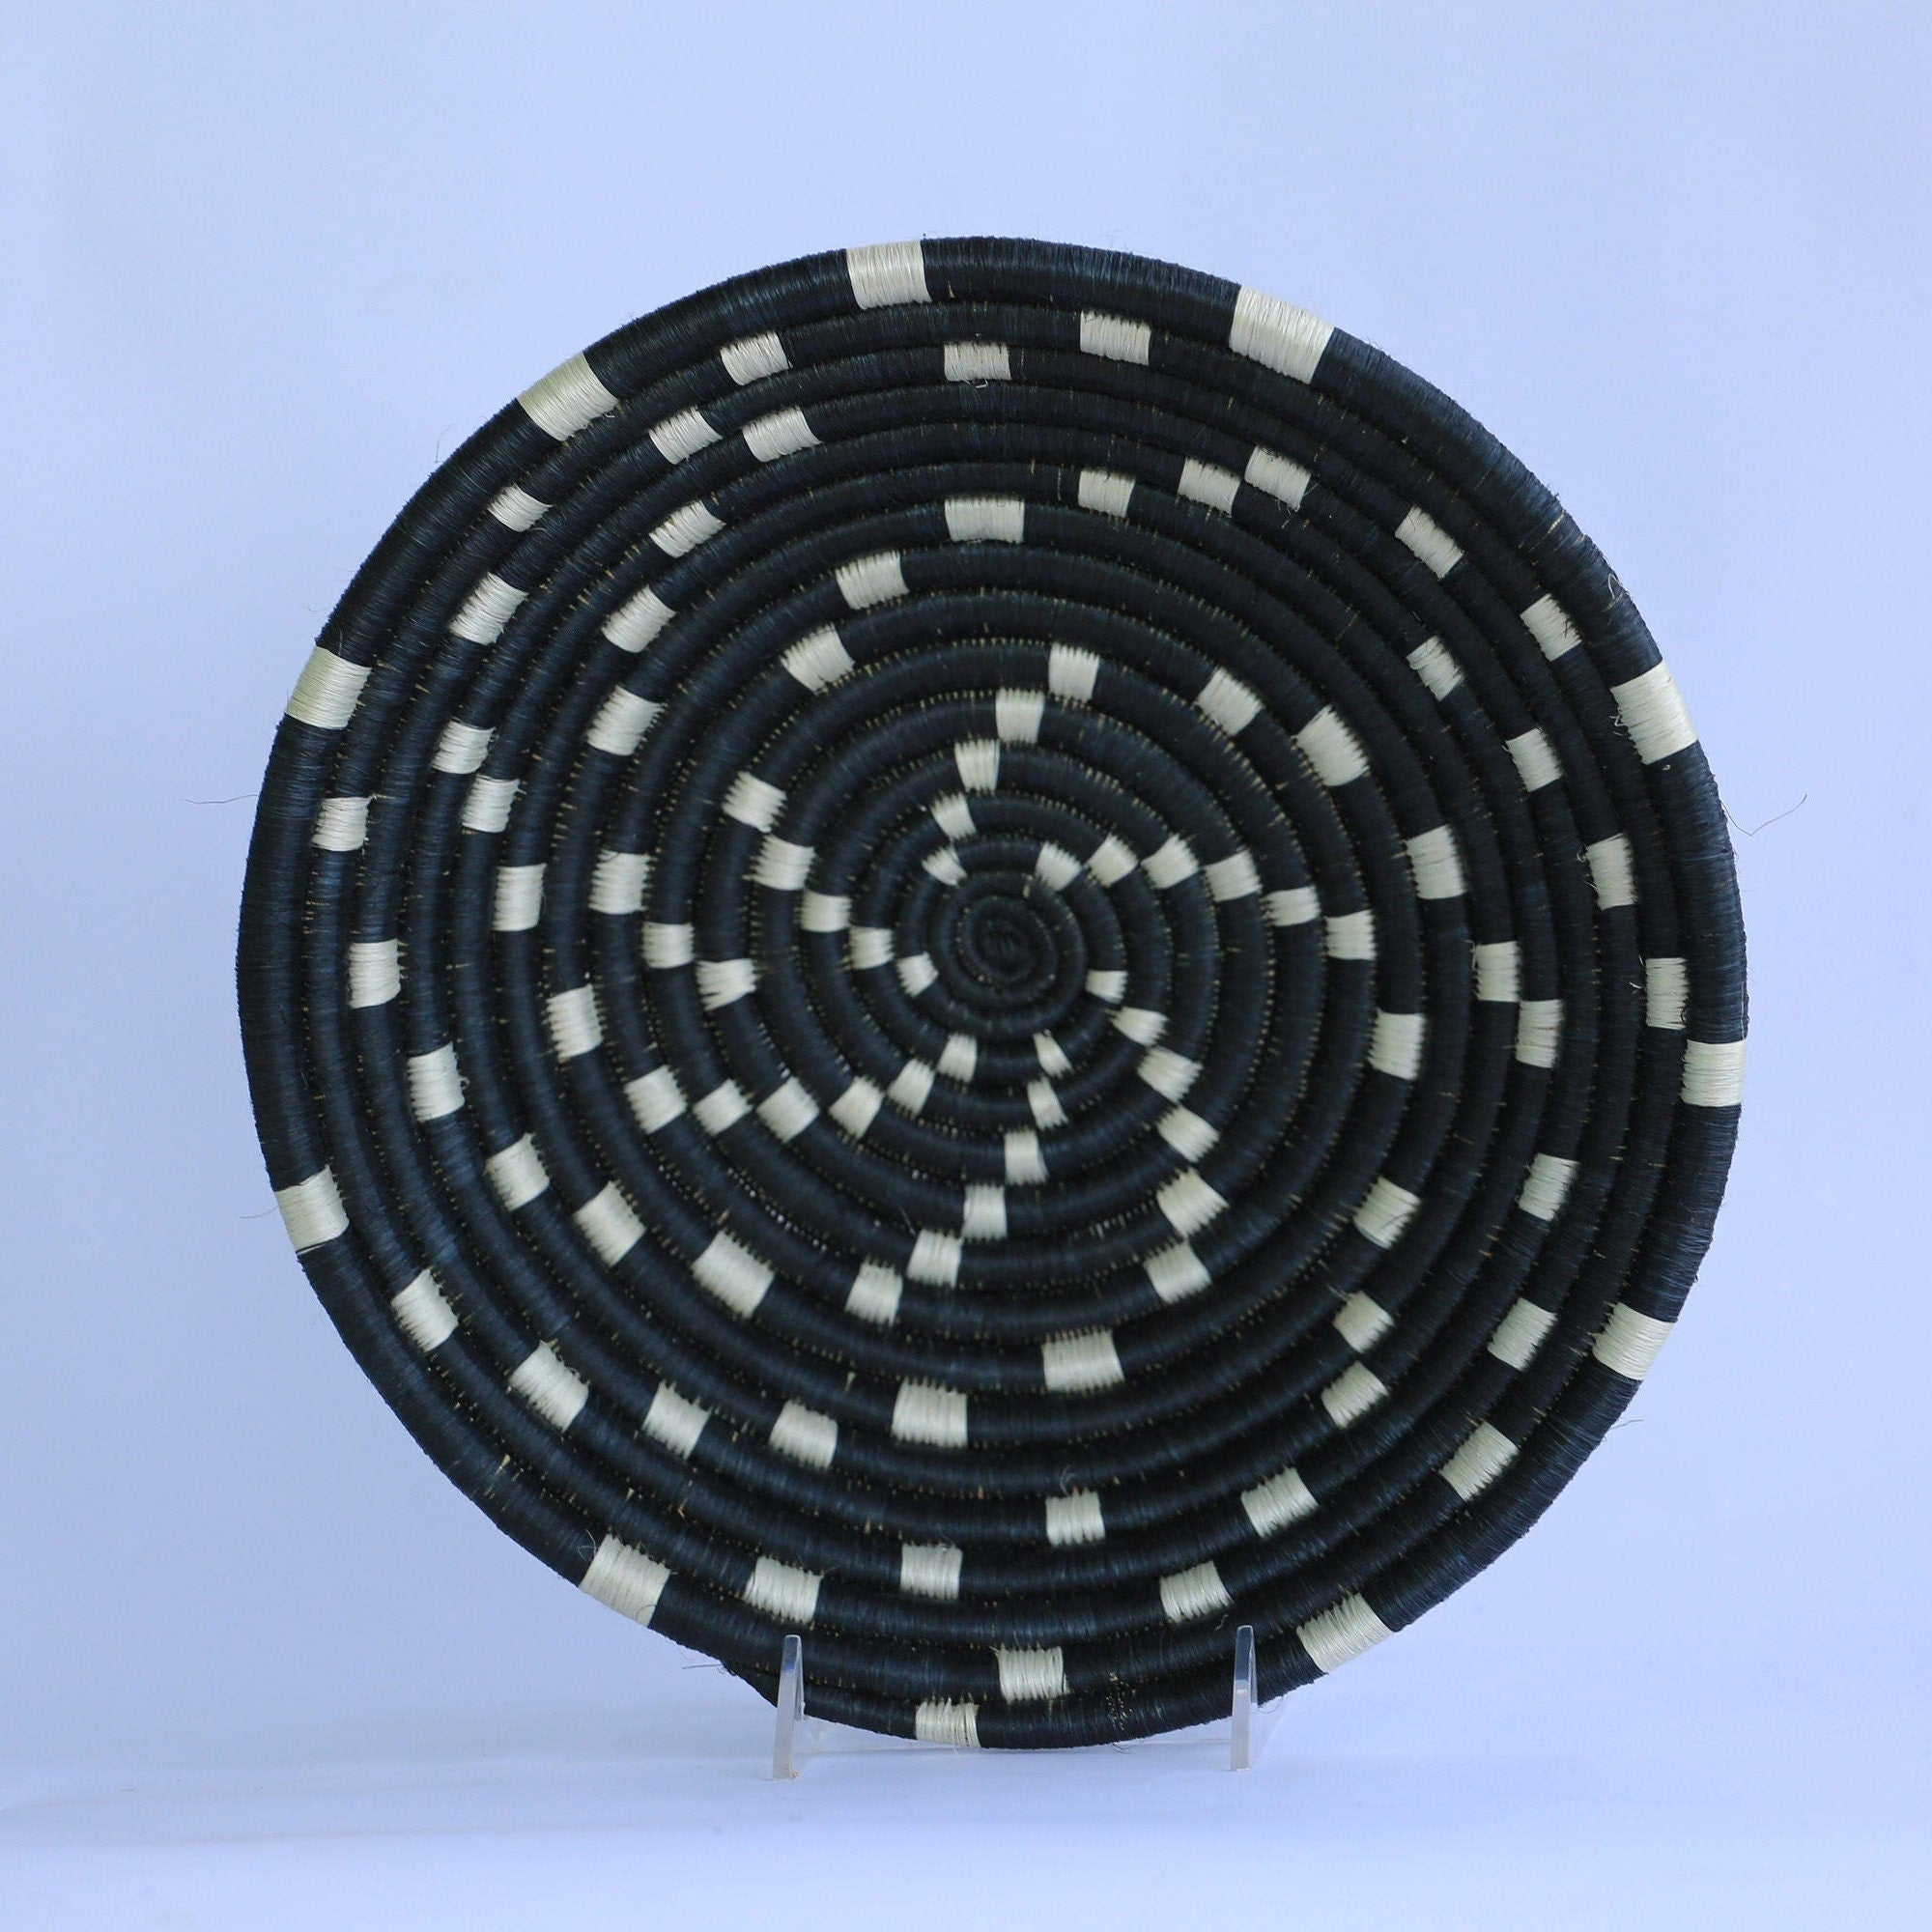 Khiry African Wall Basket, Rwanda baskets, African Woven basket. Black and White - African Baskets , African Basket , Rwanda Baskets , Wall baskets Woven Basket